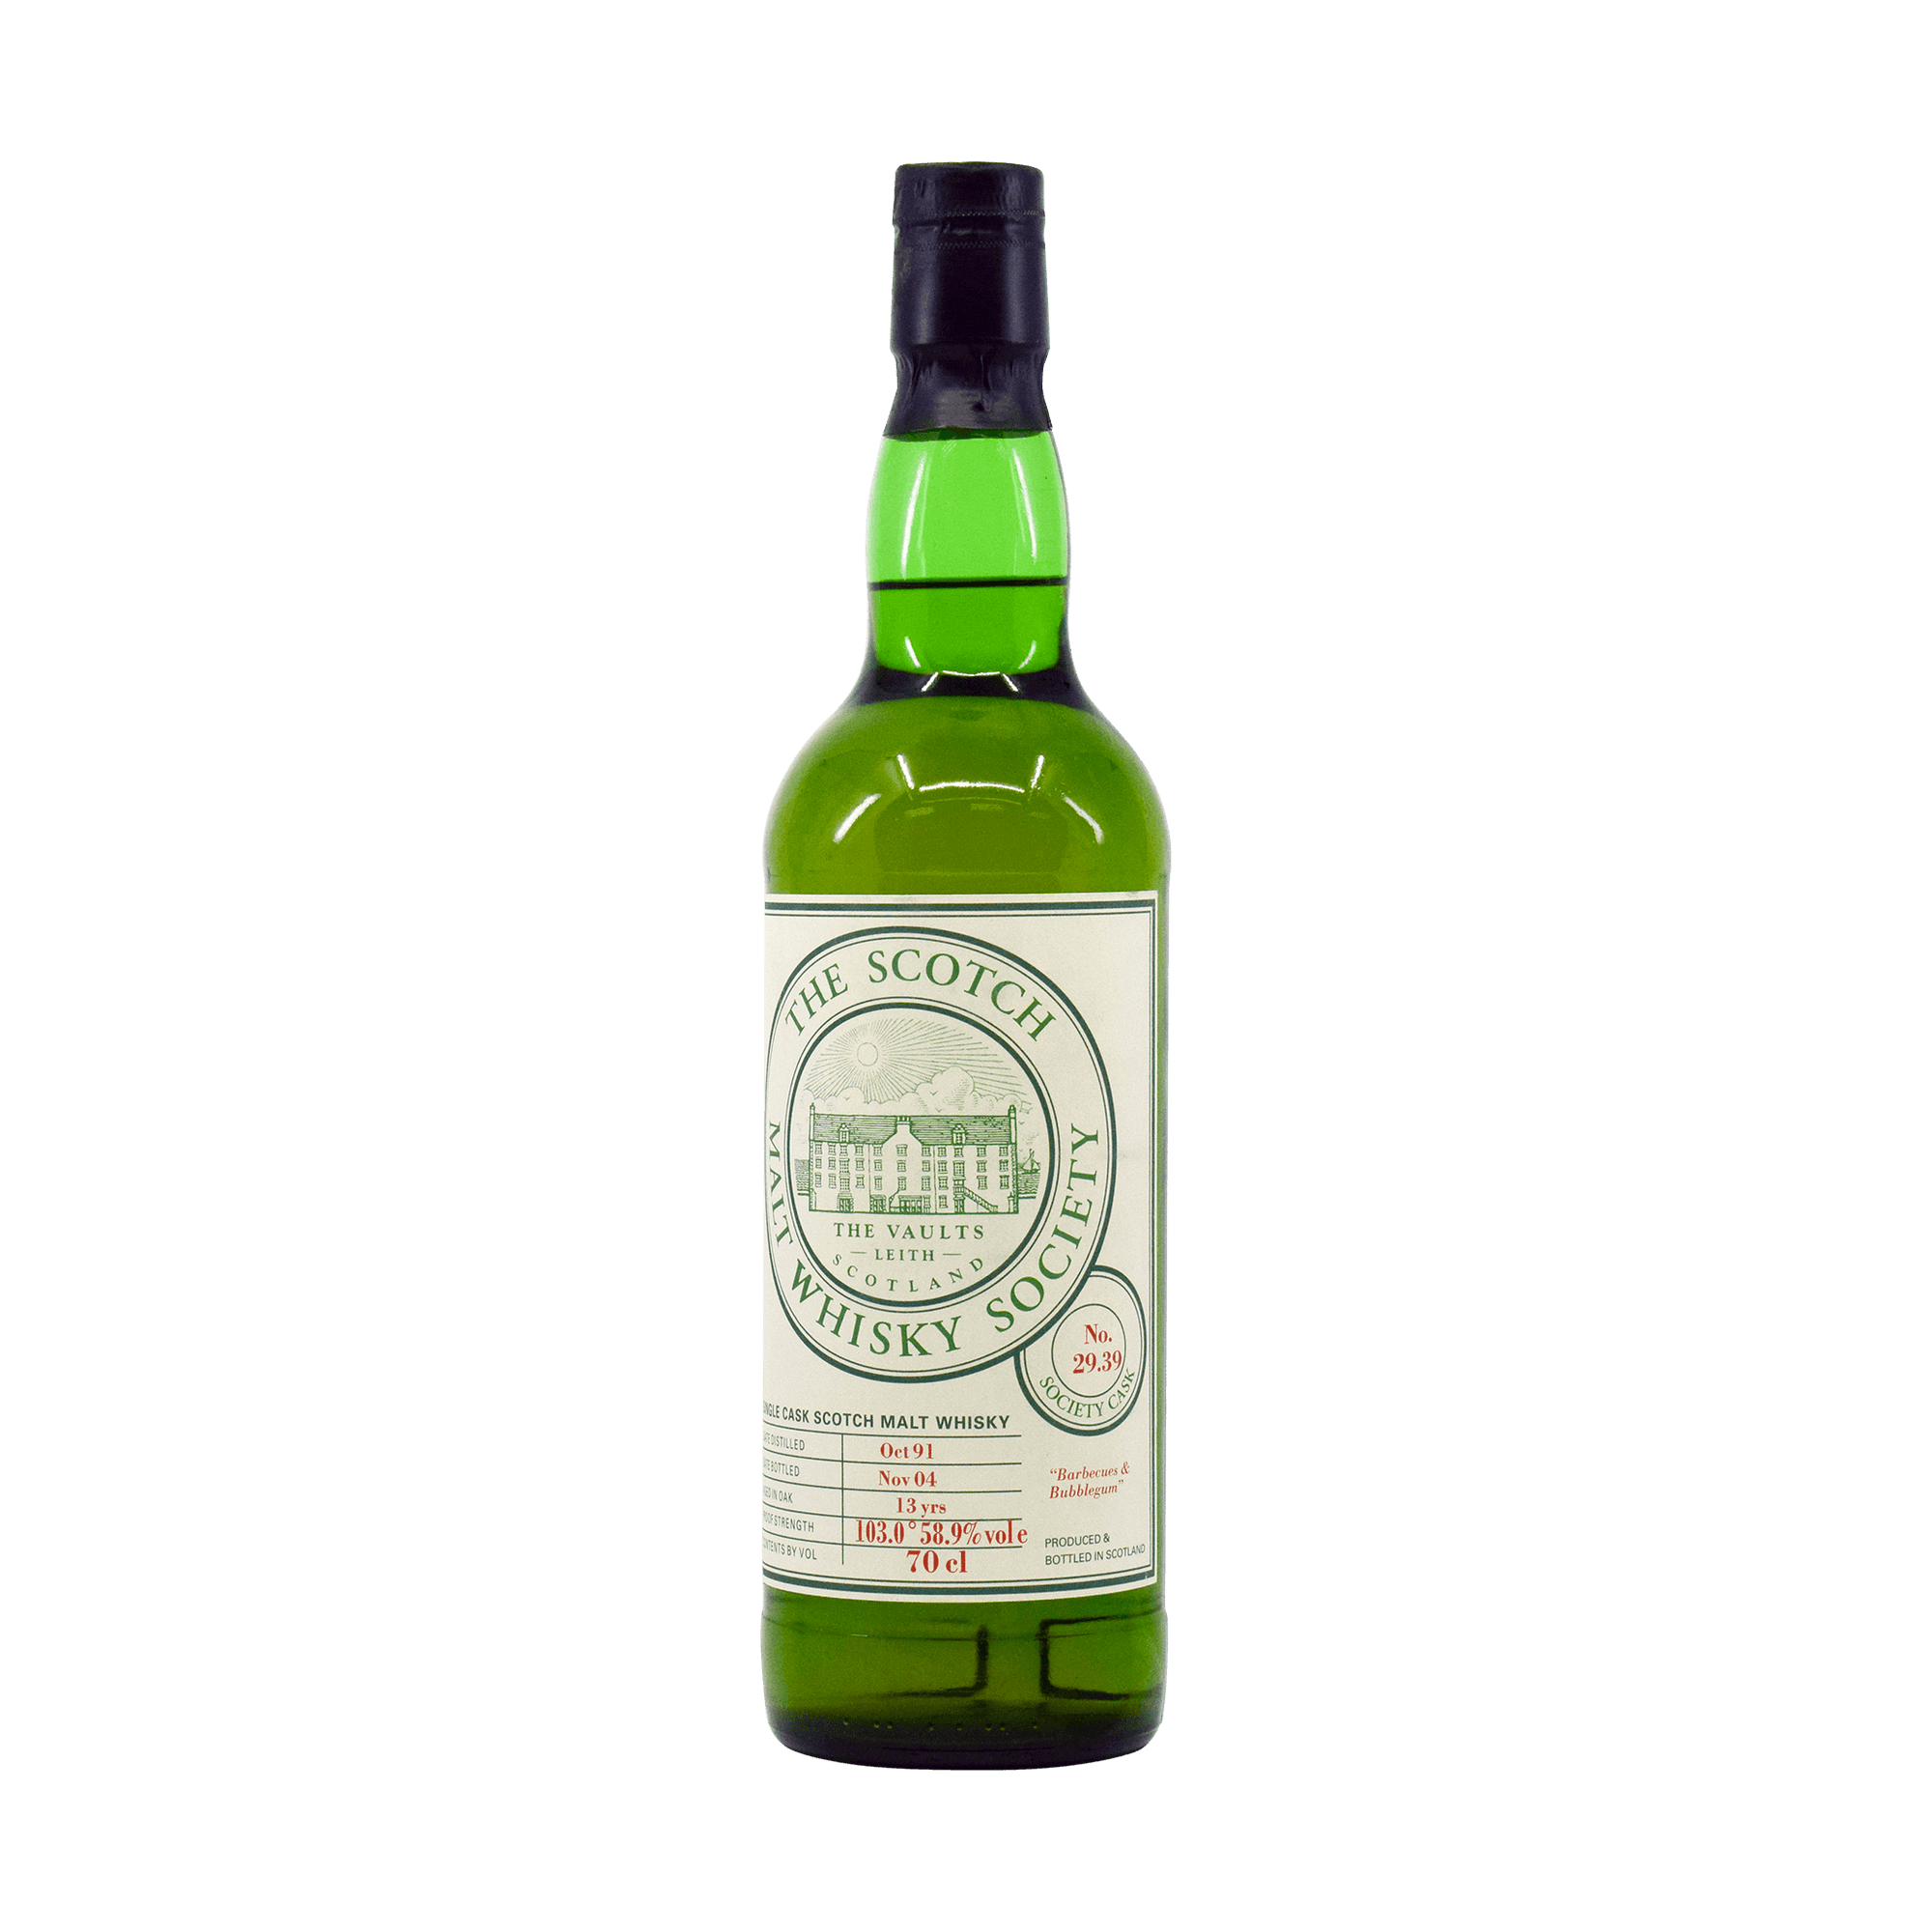 Laphroaig 1991 13 Year Old '29.39' SMWS 58.90% 70cl